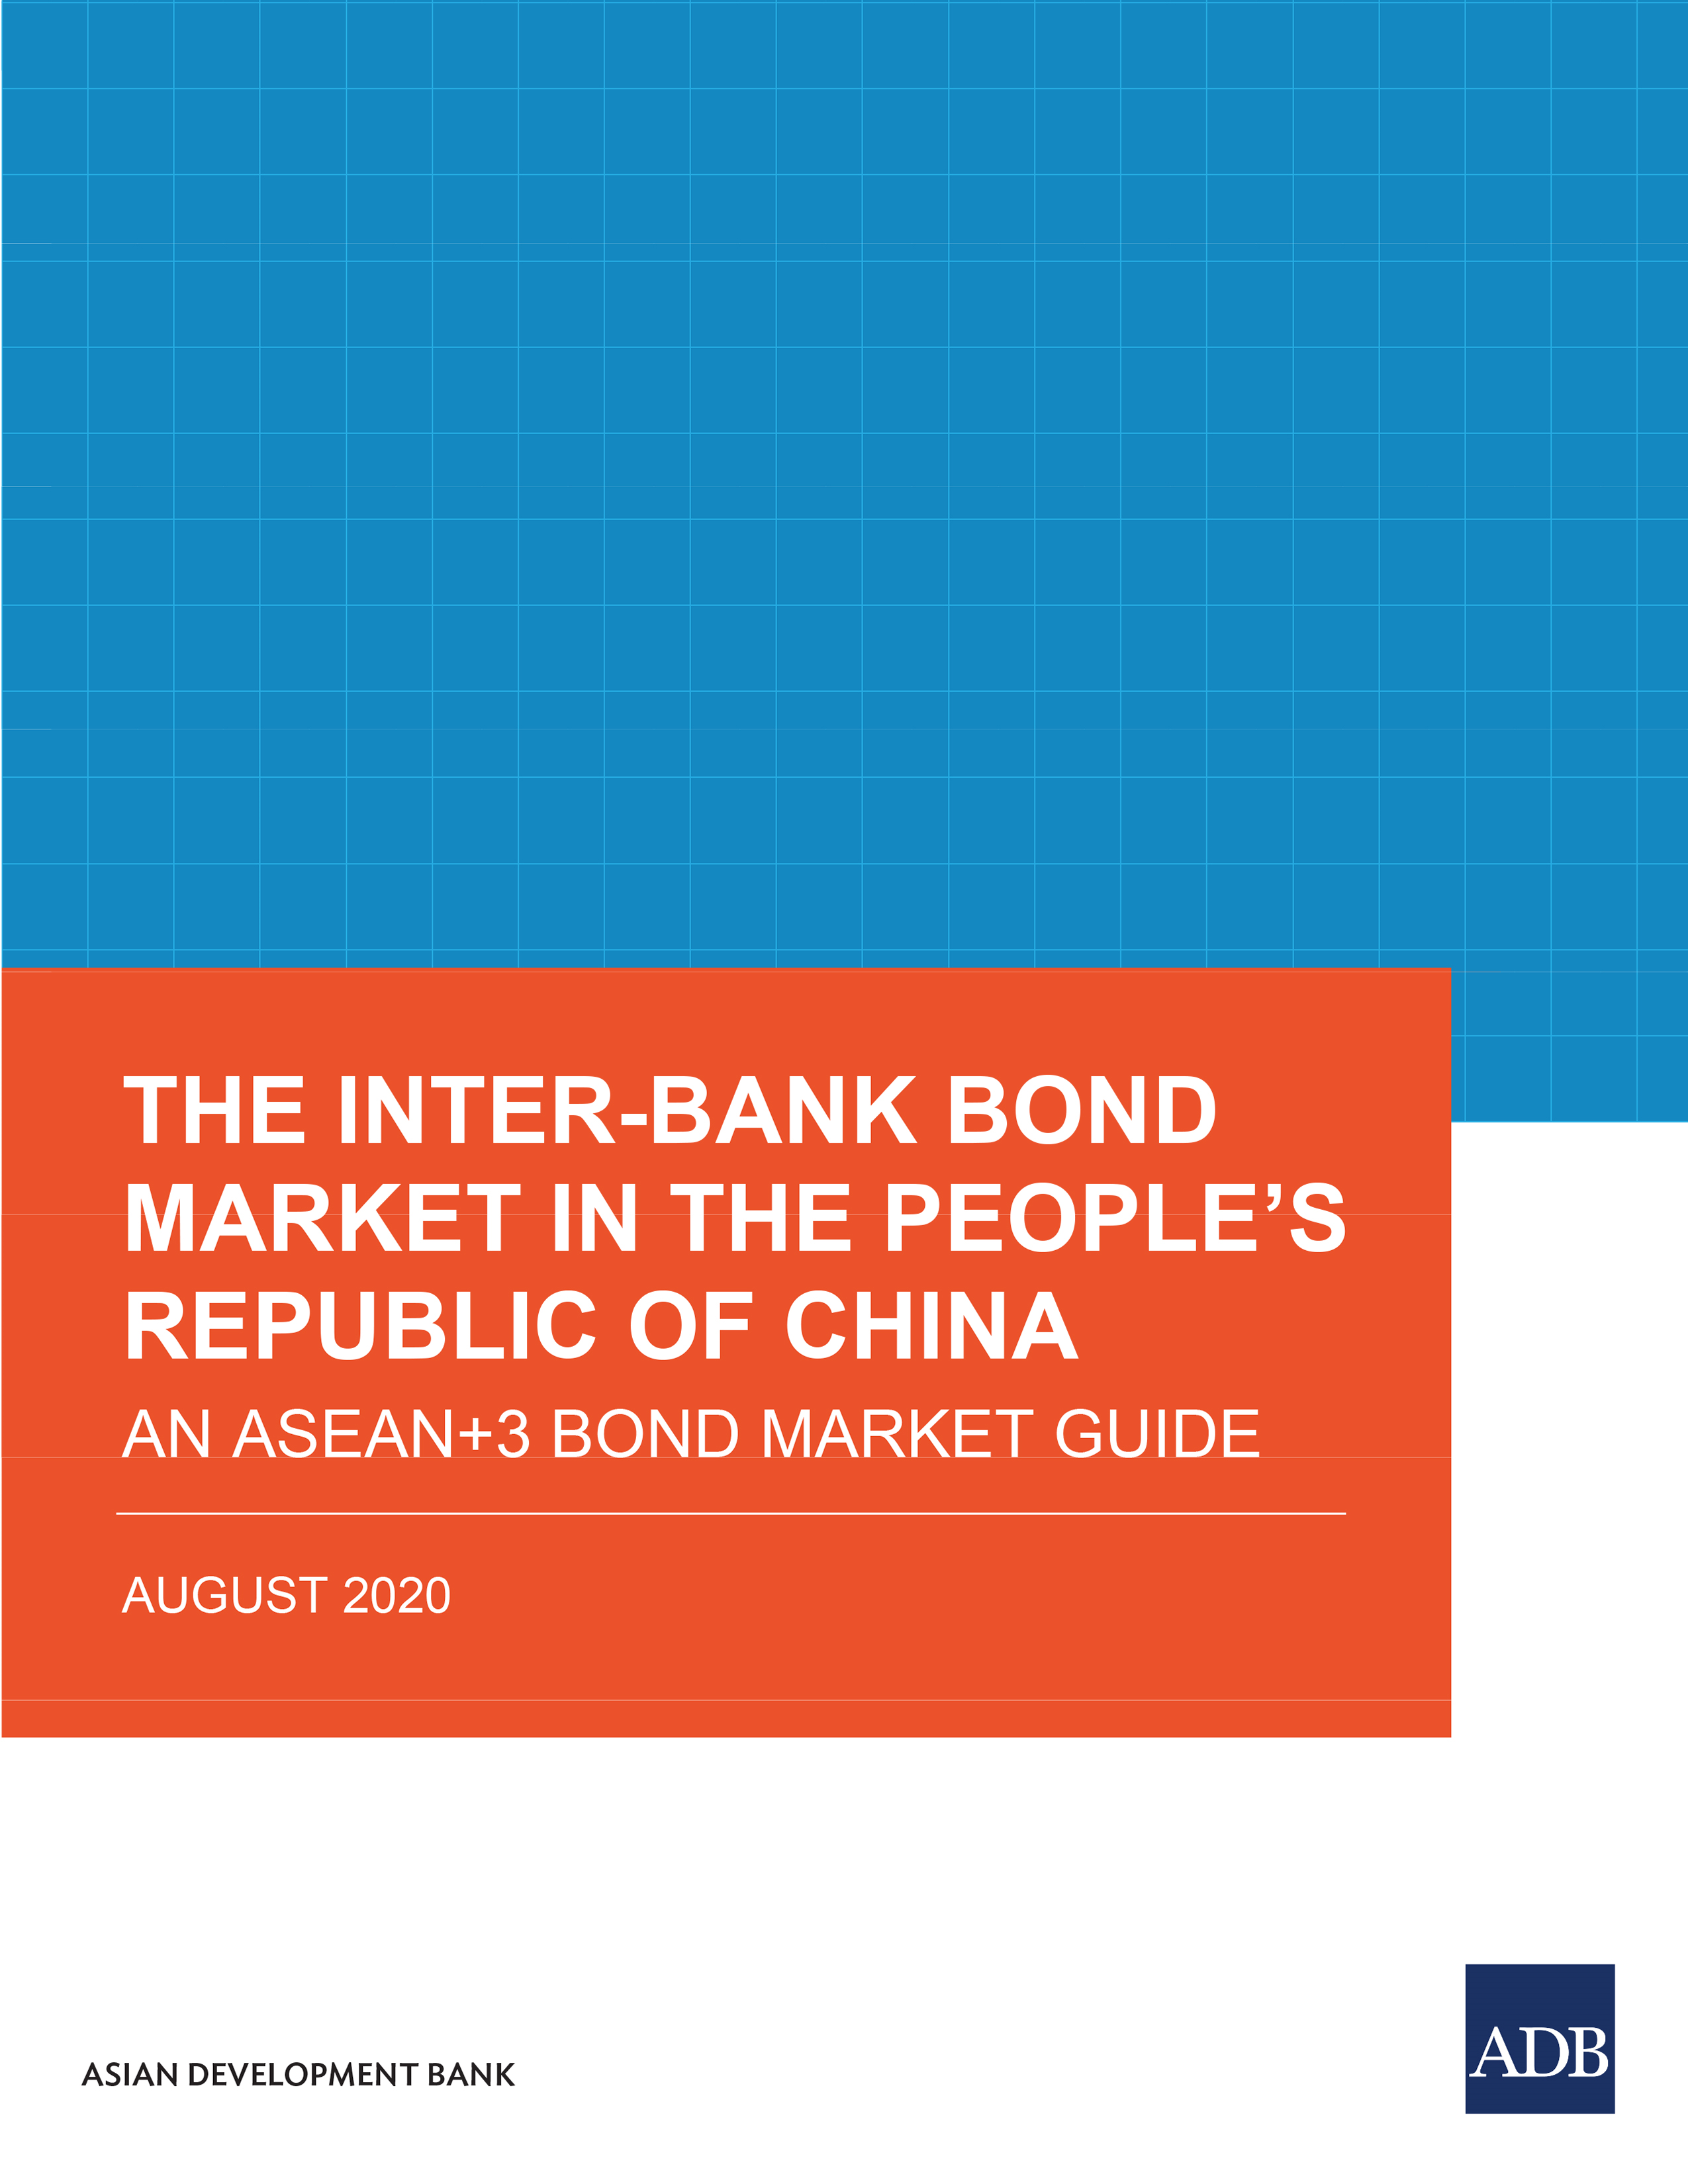 The Inter-Bank Bond Market in the People's Republic of China